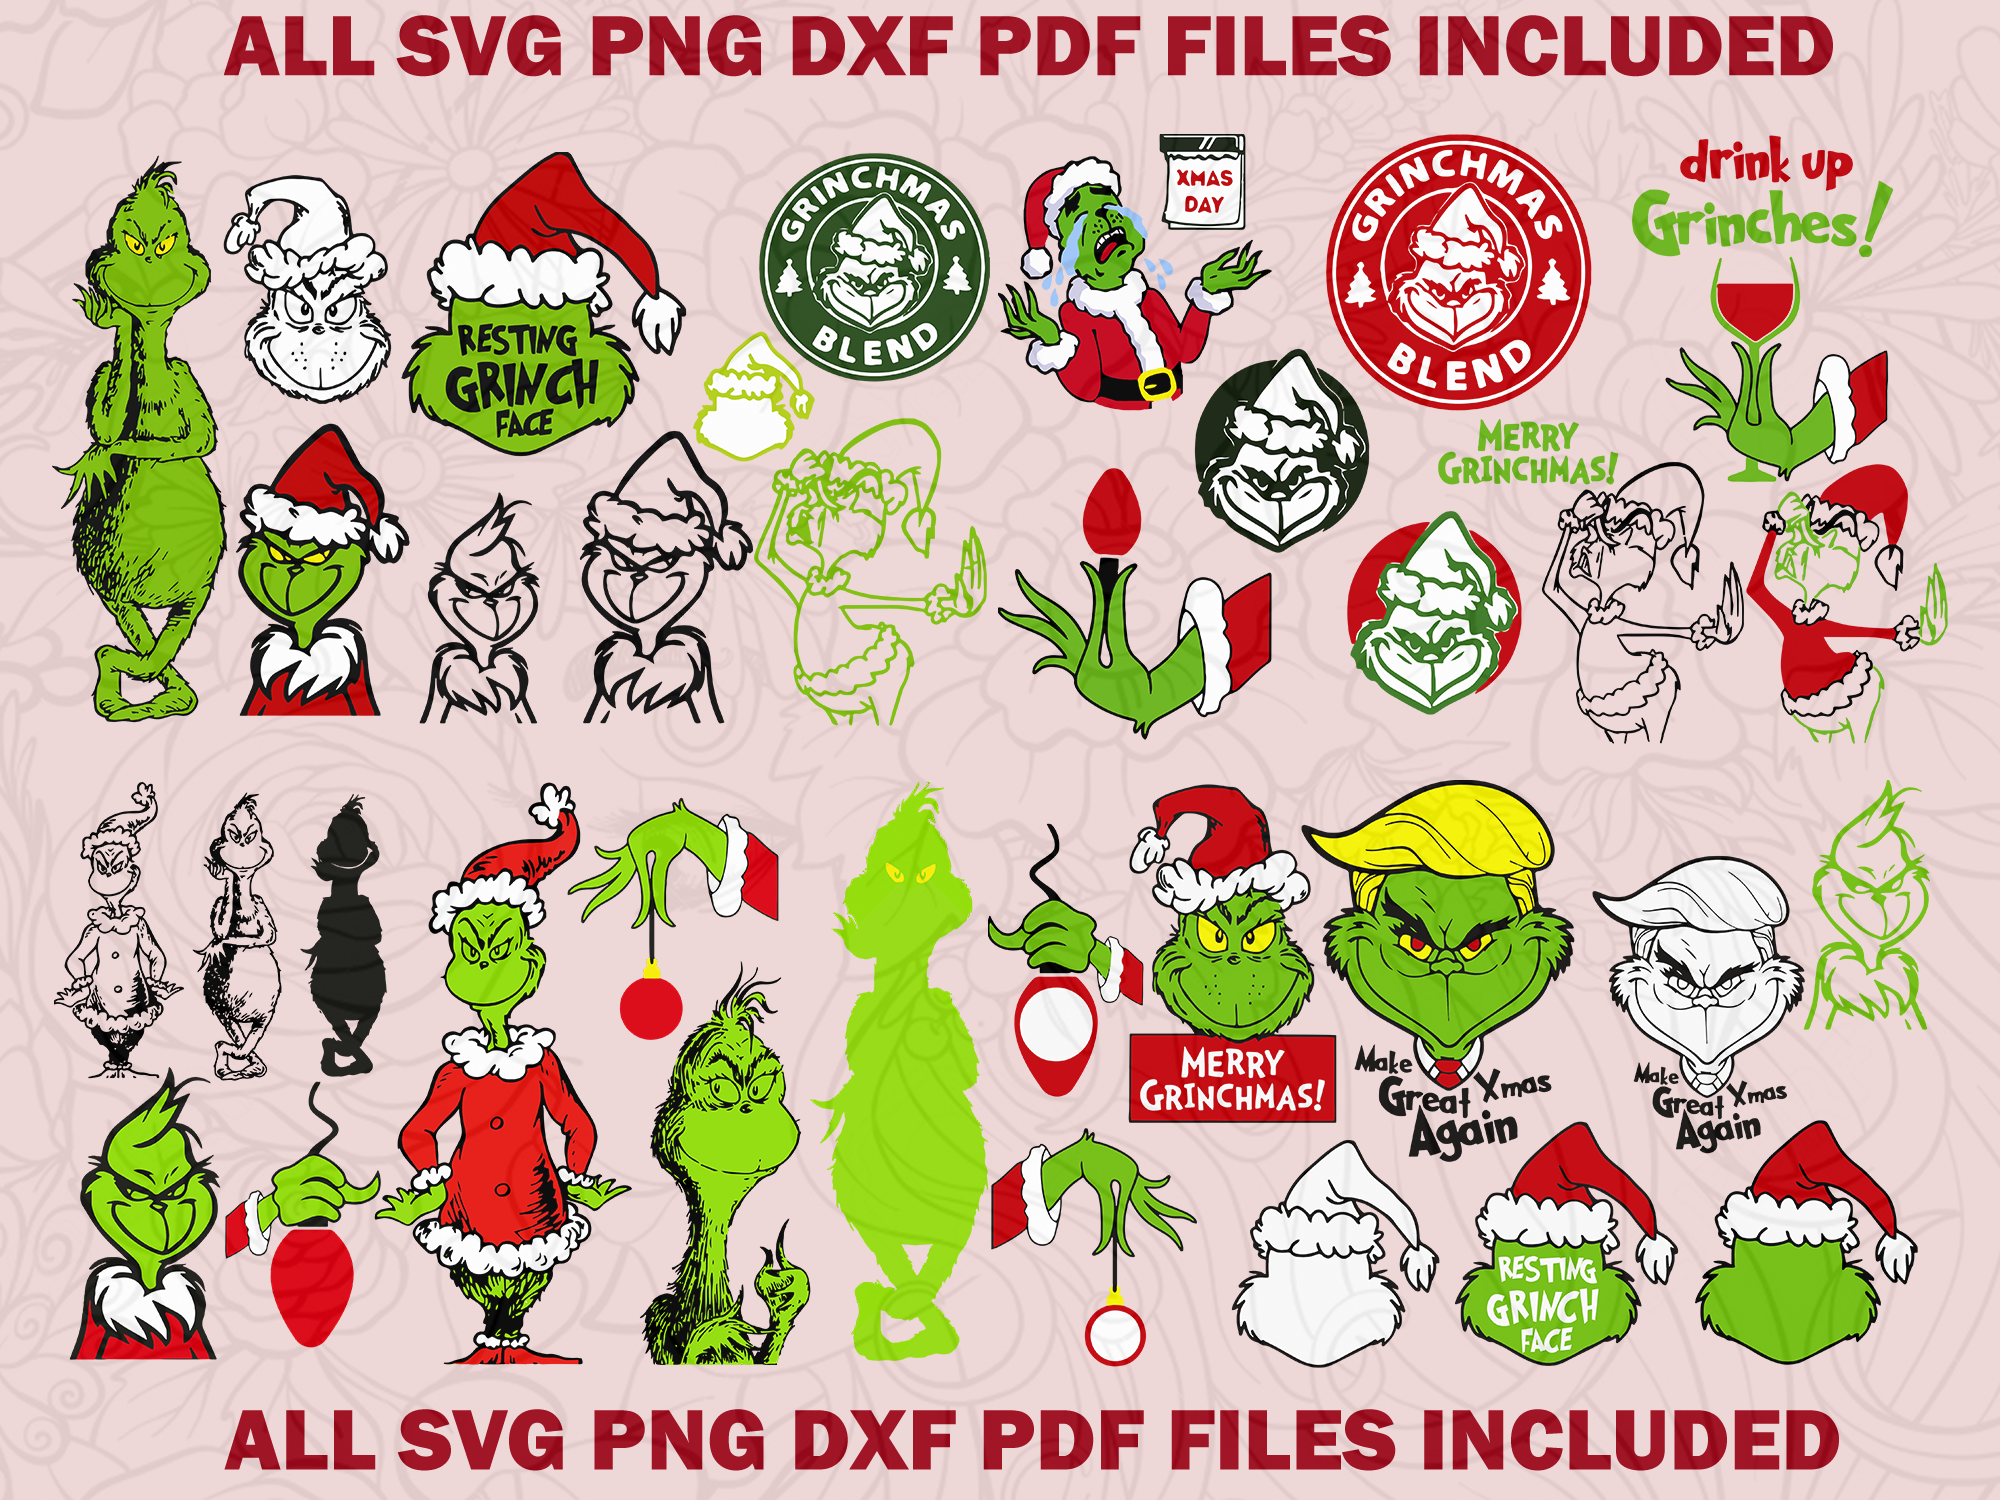 The grinch svg bundle 27, The grinch face, The grinch hand